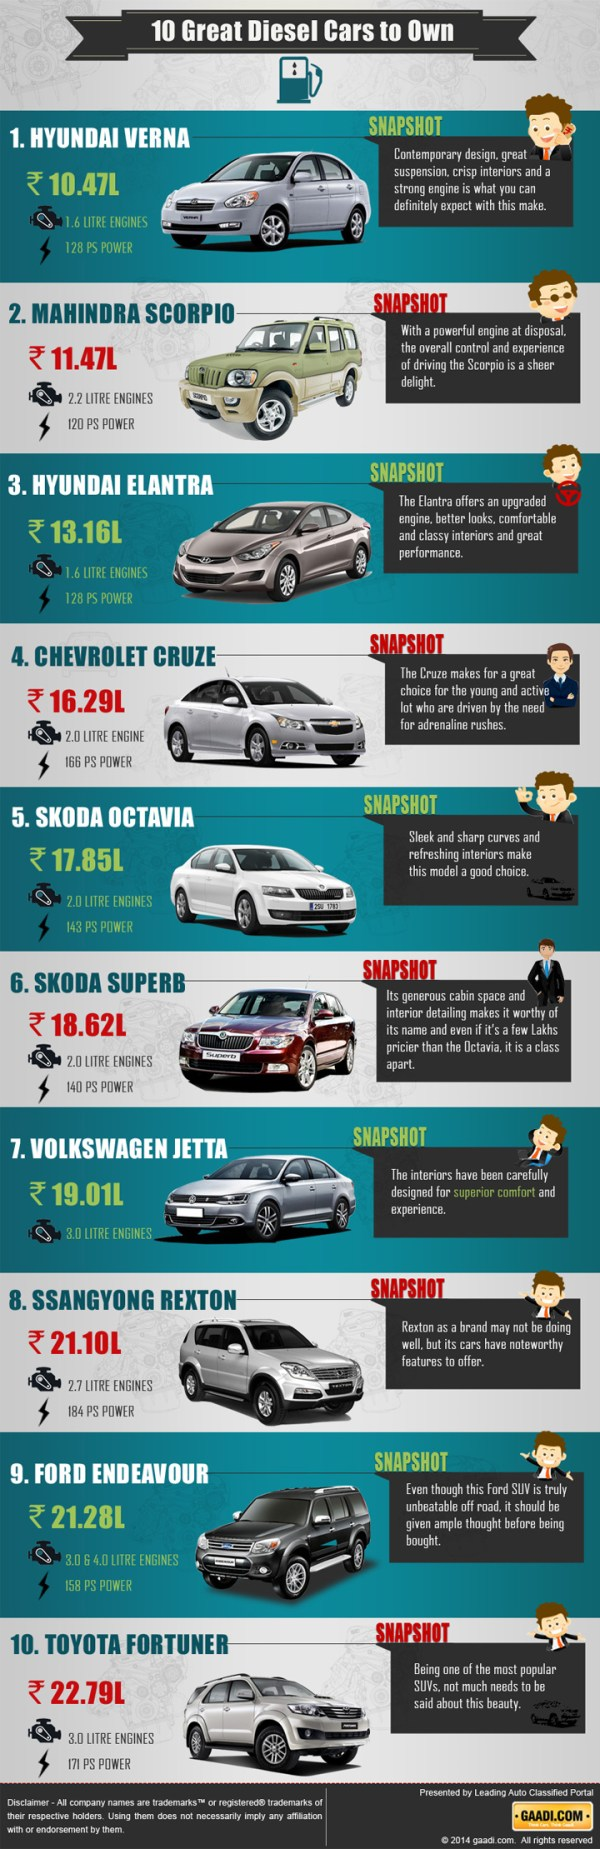 10-great-diesel-cars-to-own